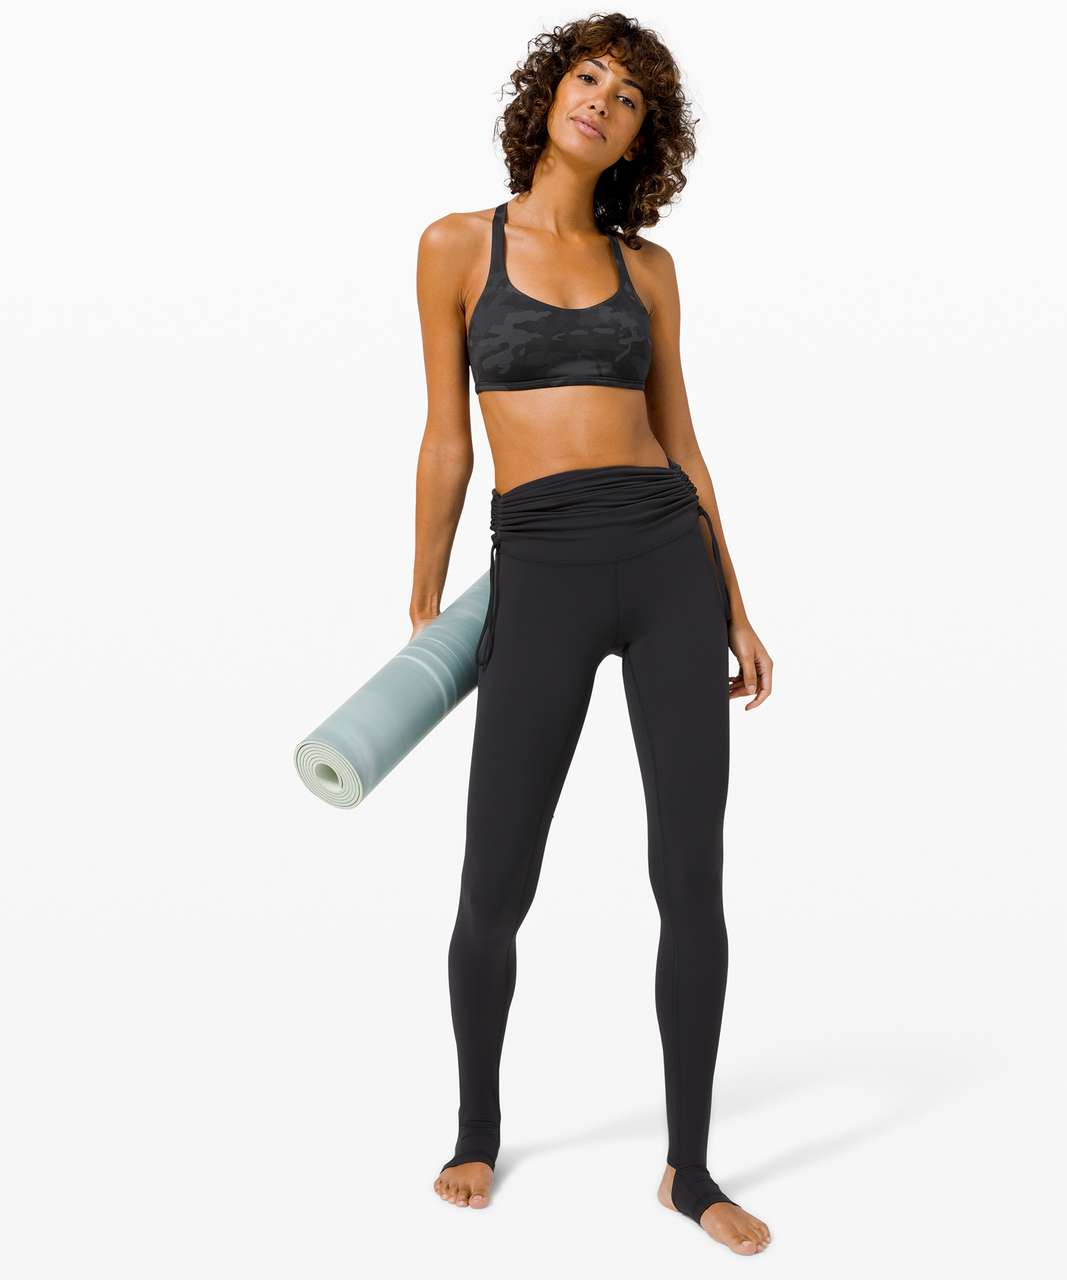 Lululemon Free To Be Bra Wild *Light Support, A/B Cup - Incognito Camo Multi Grey